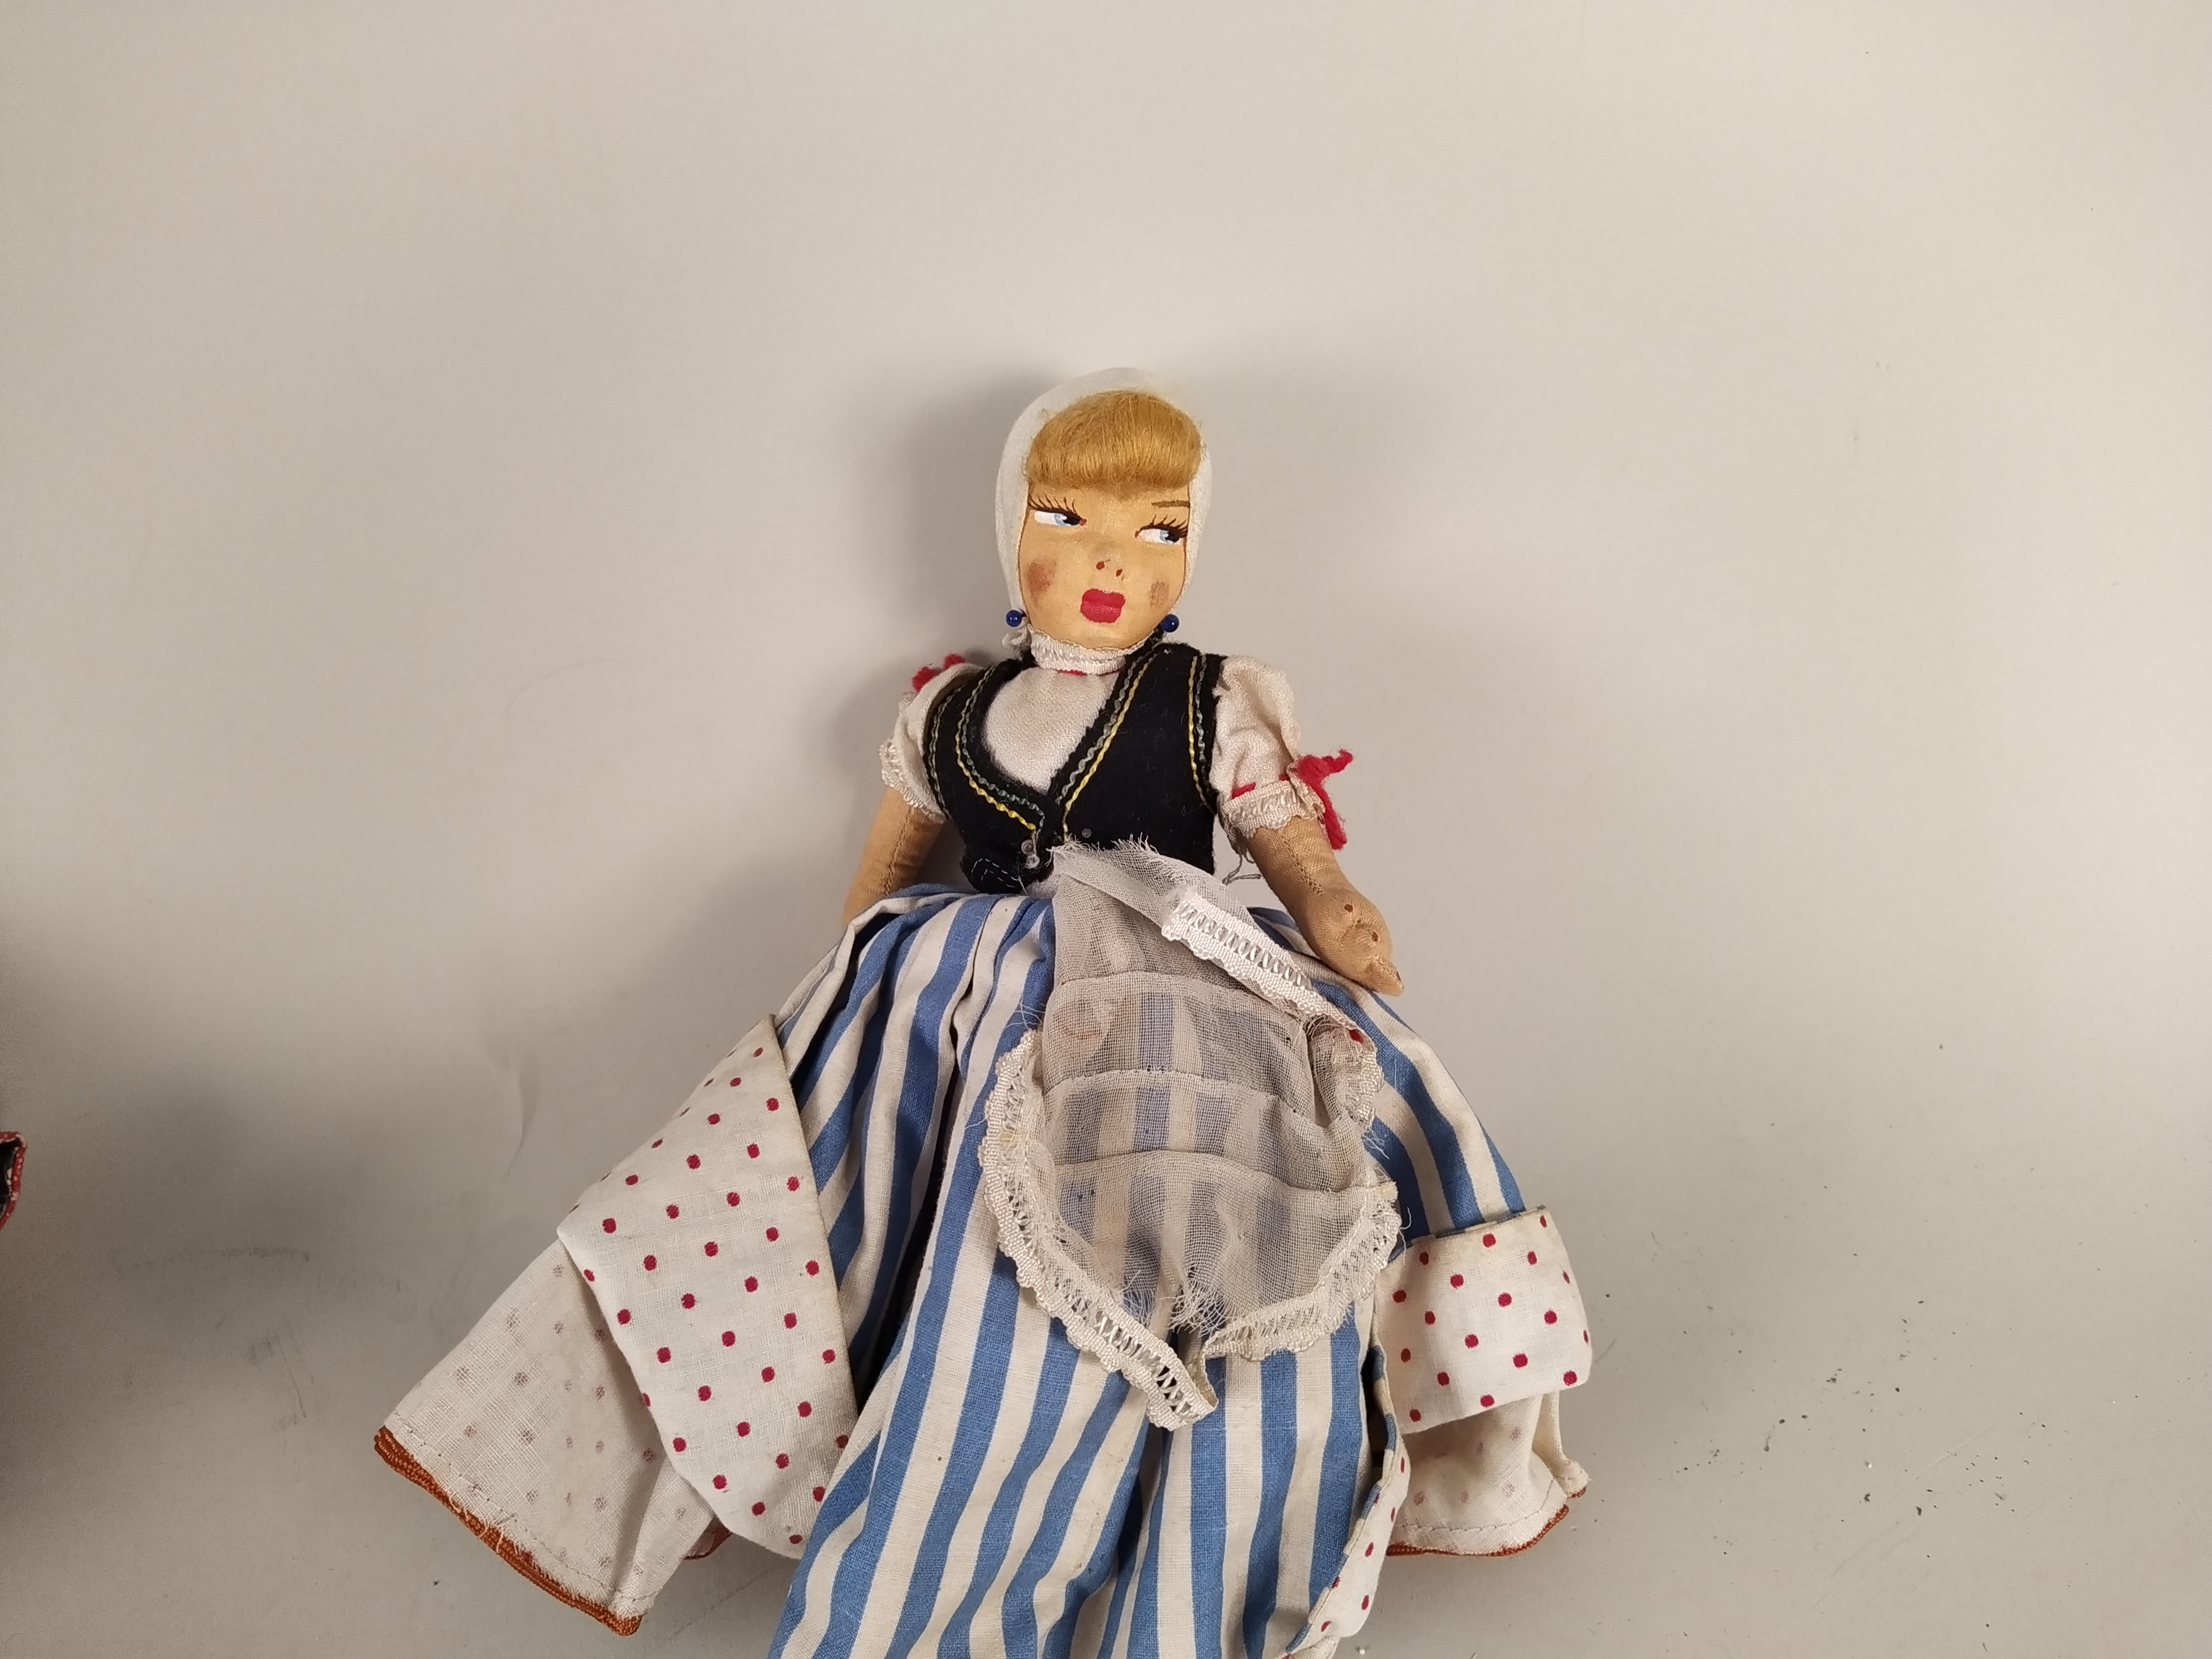 Two vintage 'Topsy Turvy' cloth dolls, - Image 3 of 3